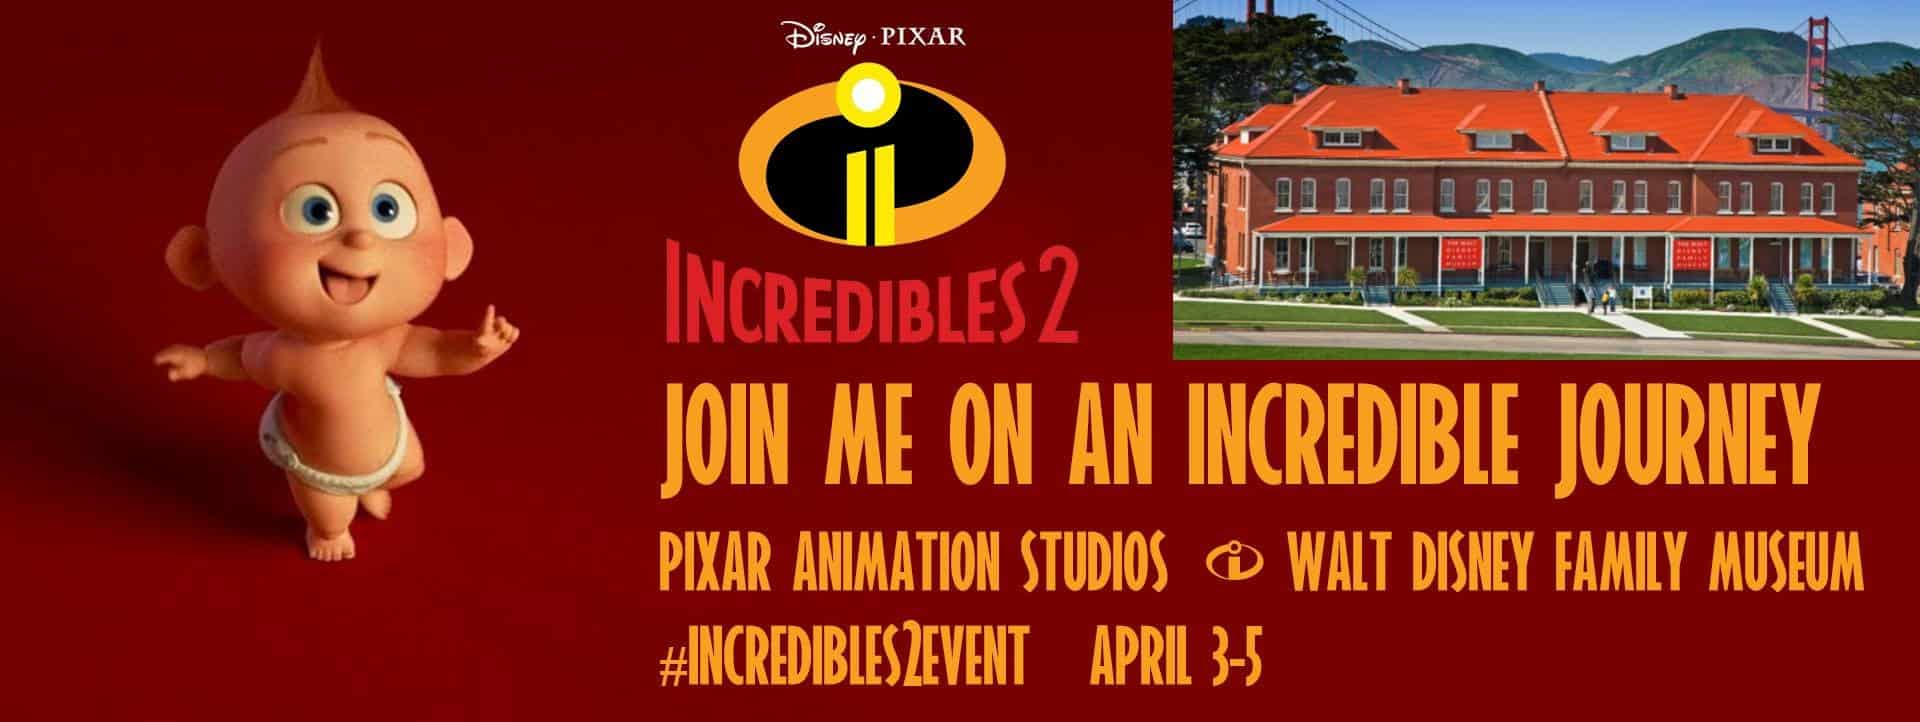 Incredibles 2 movie event banner